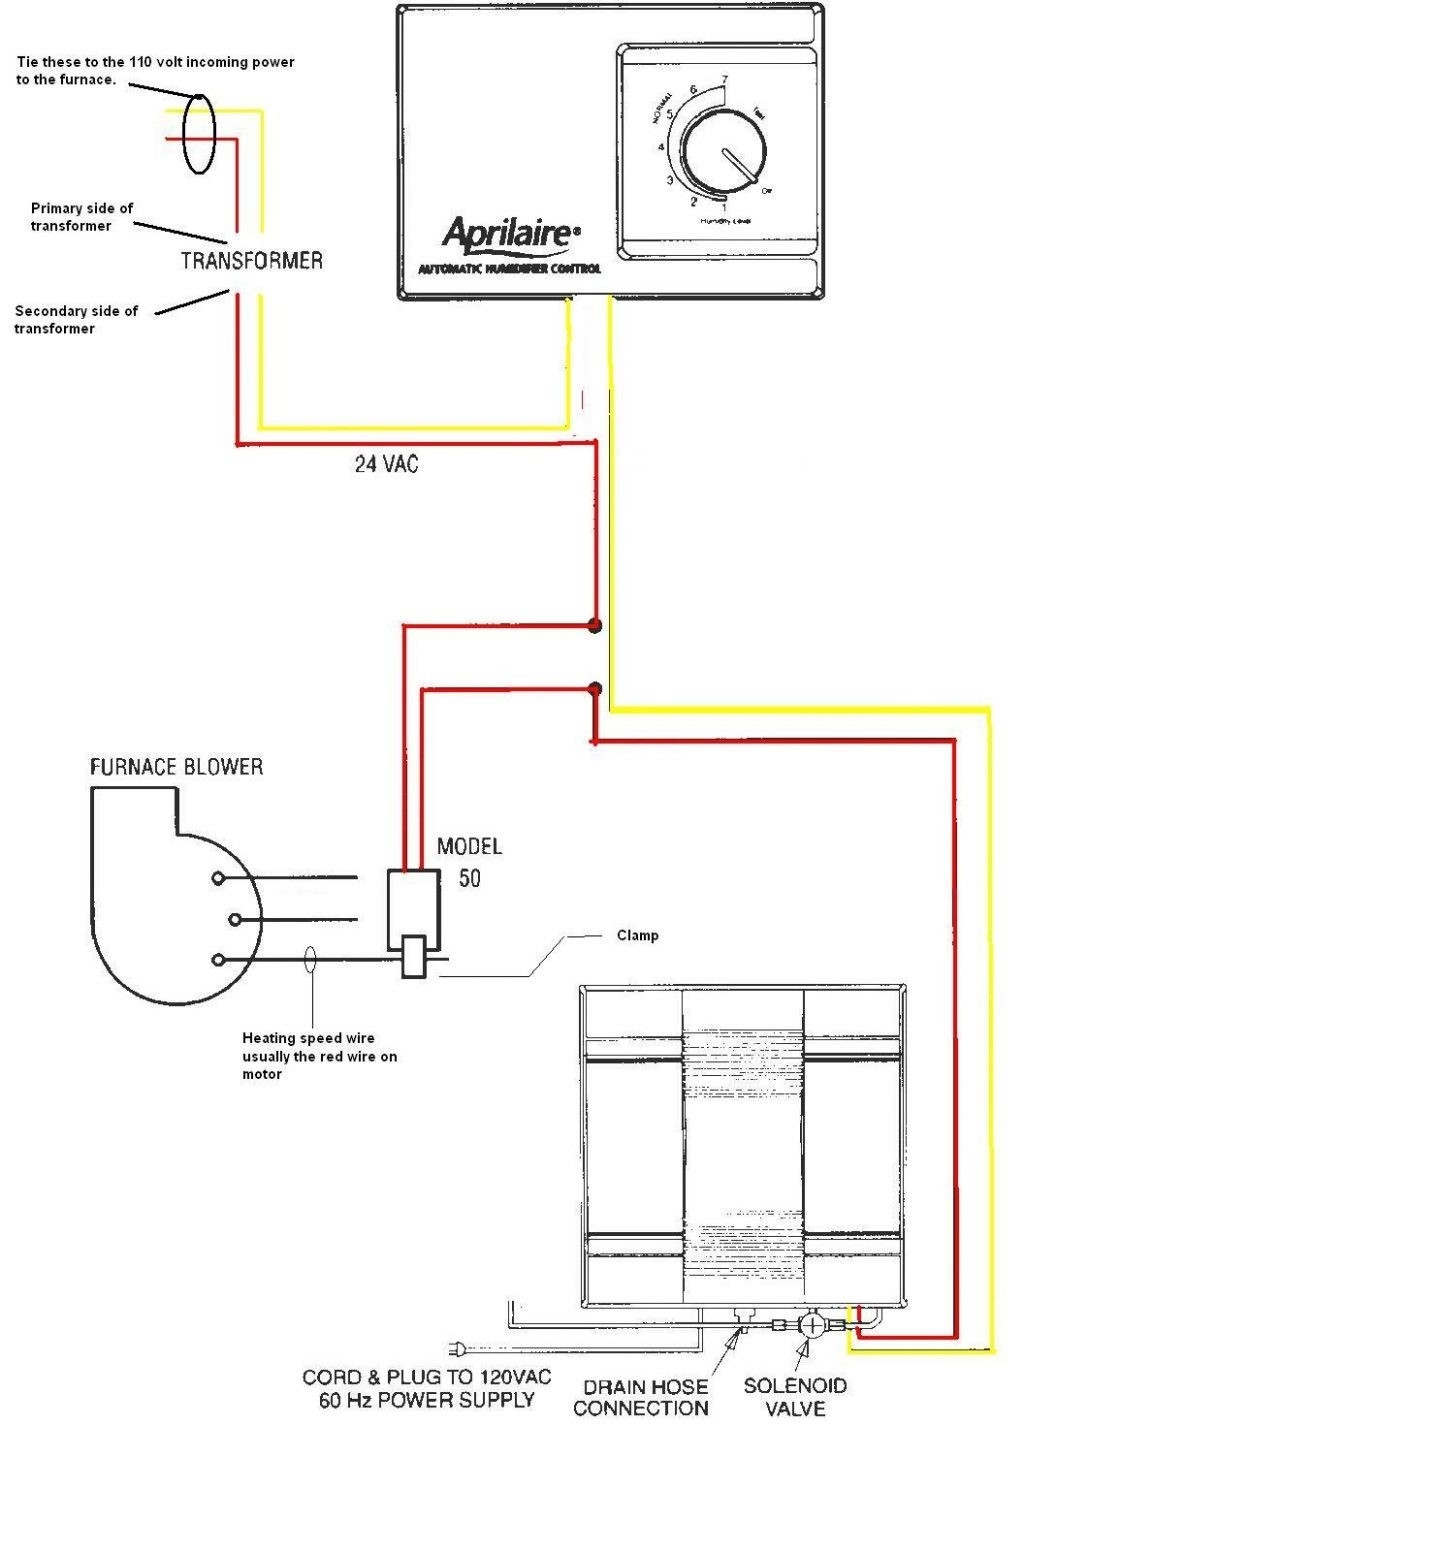 Attic Fan Timer Wiring Diagram Detailed Schematics Connecting A Single Light To An Existing Lighting Circuit Ie Loft Whole House Switch Awesome Image Hampton Bay